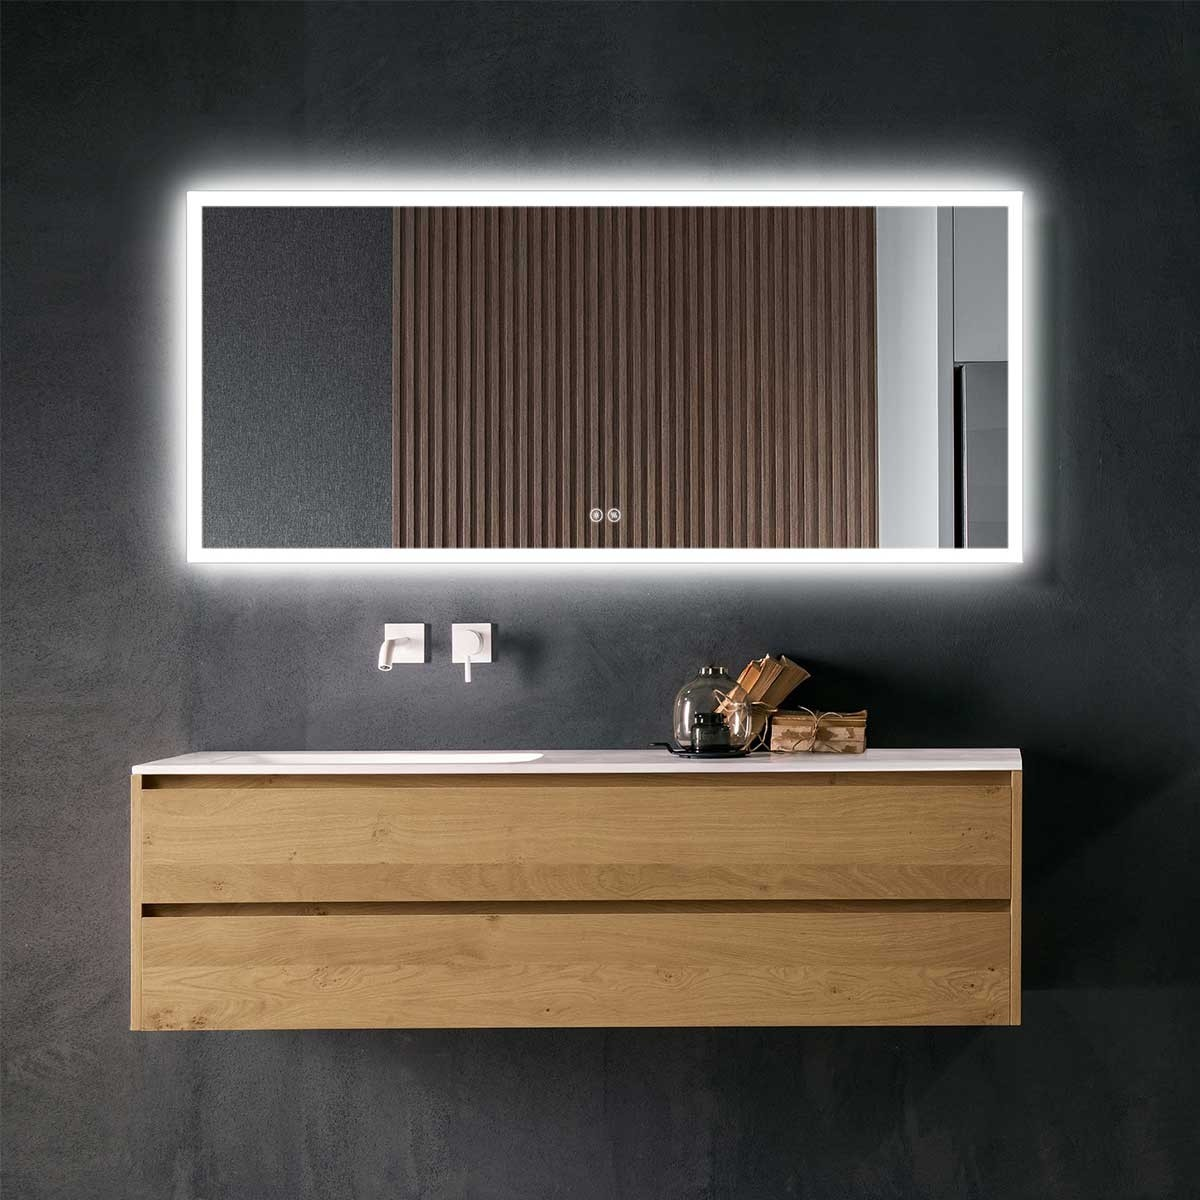 DECORAPORT 70 x 32 In LED Bathroom Mirror with Touch Button, Anti-Fog, Dimmable, Vertical & Horizontal Mount (NT02-7032)